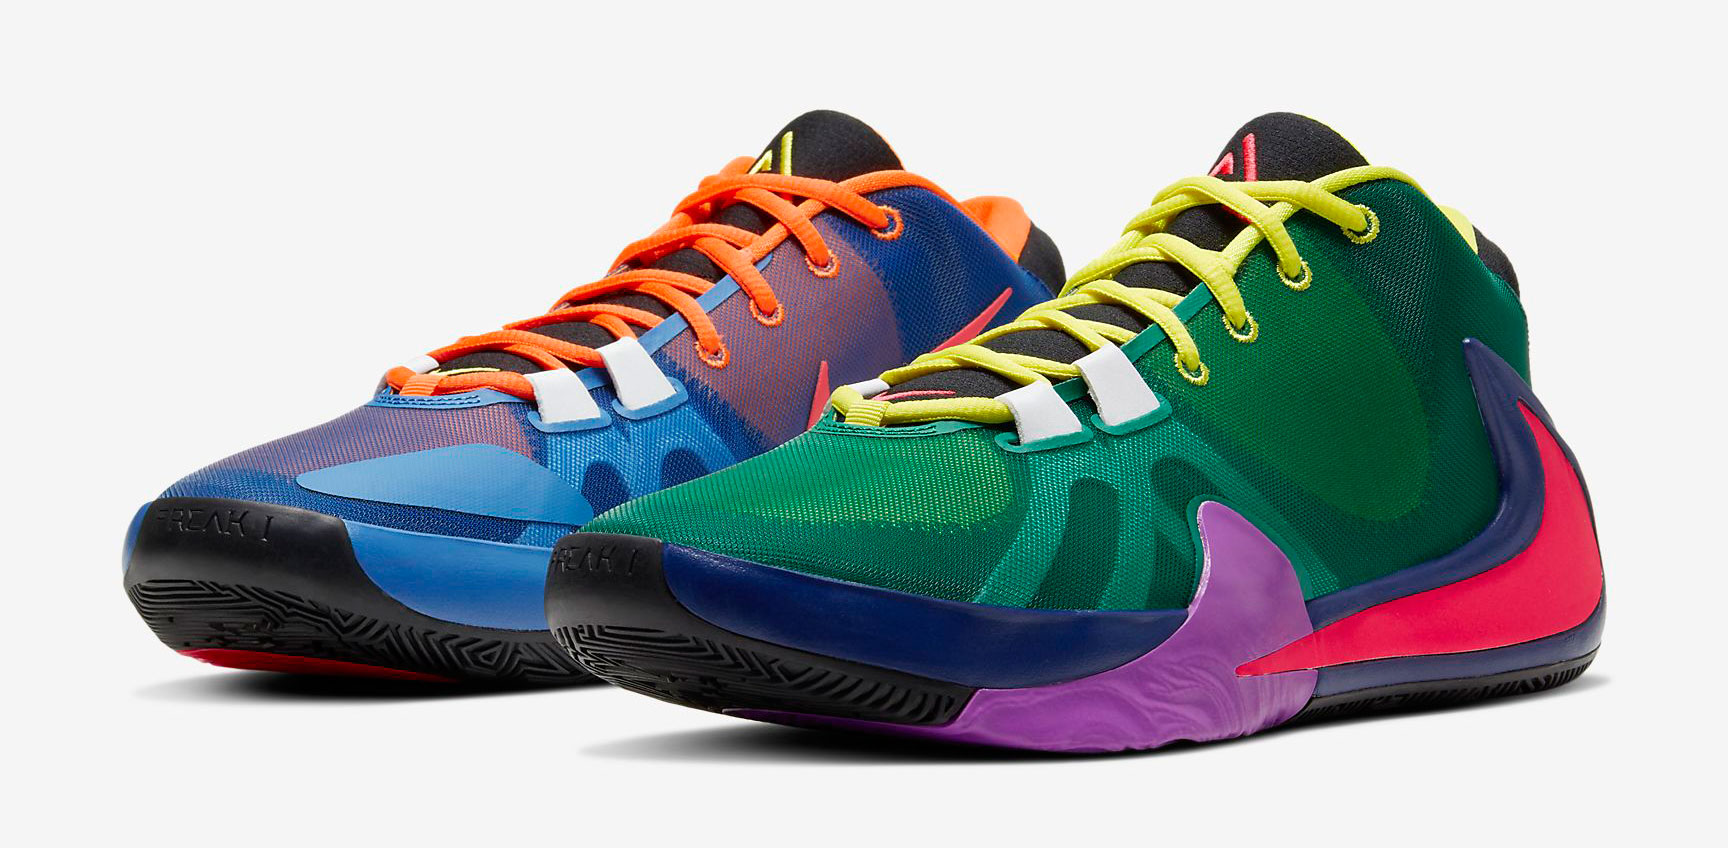 nike-zoom-freak-1-multi-color-roots-where-to-buy